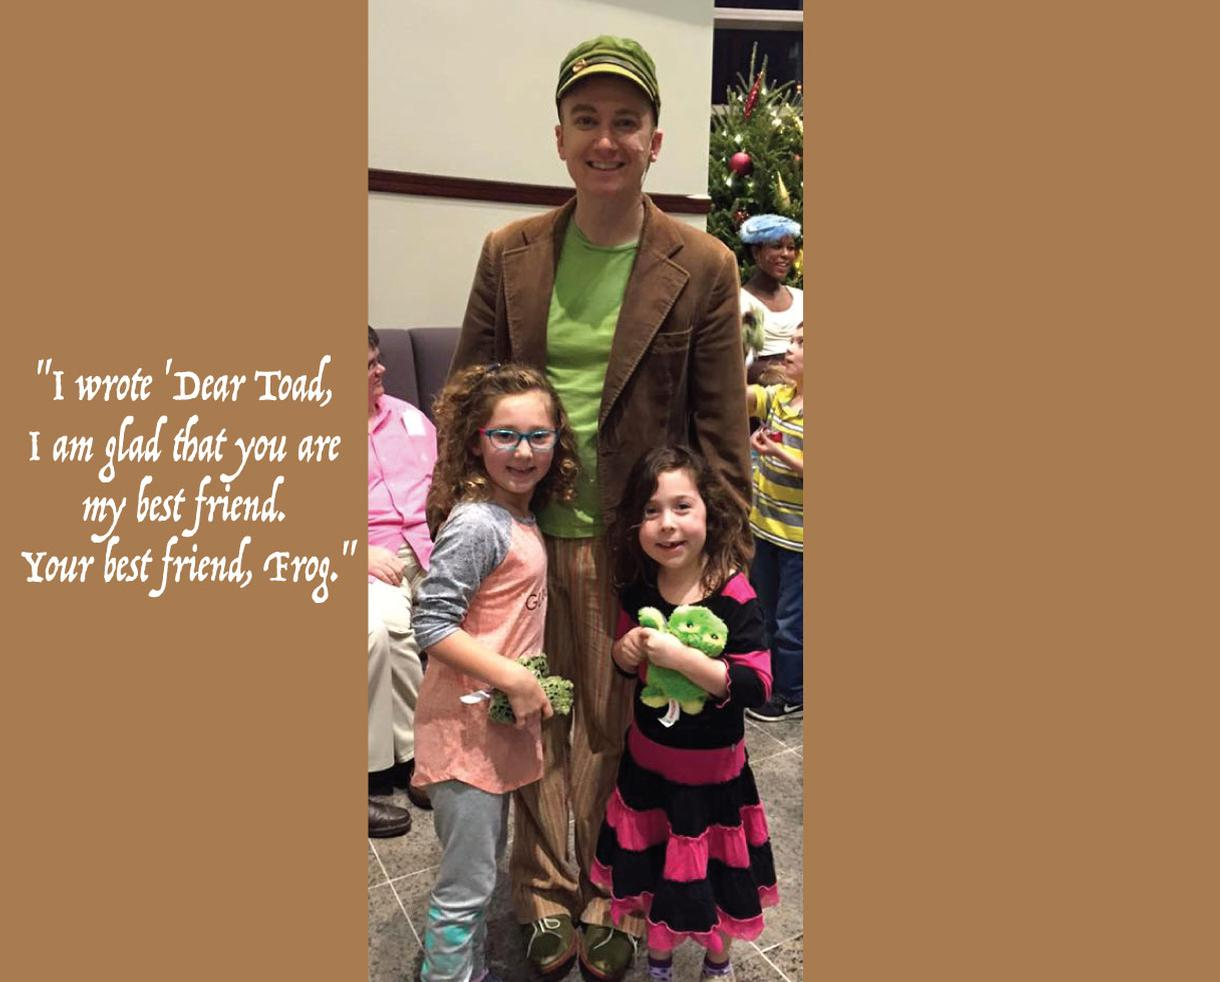 A Year With Frog and Toad at Synchronicity Theatre